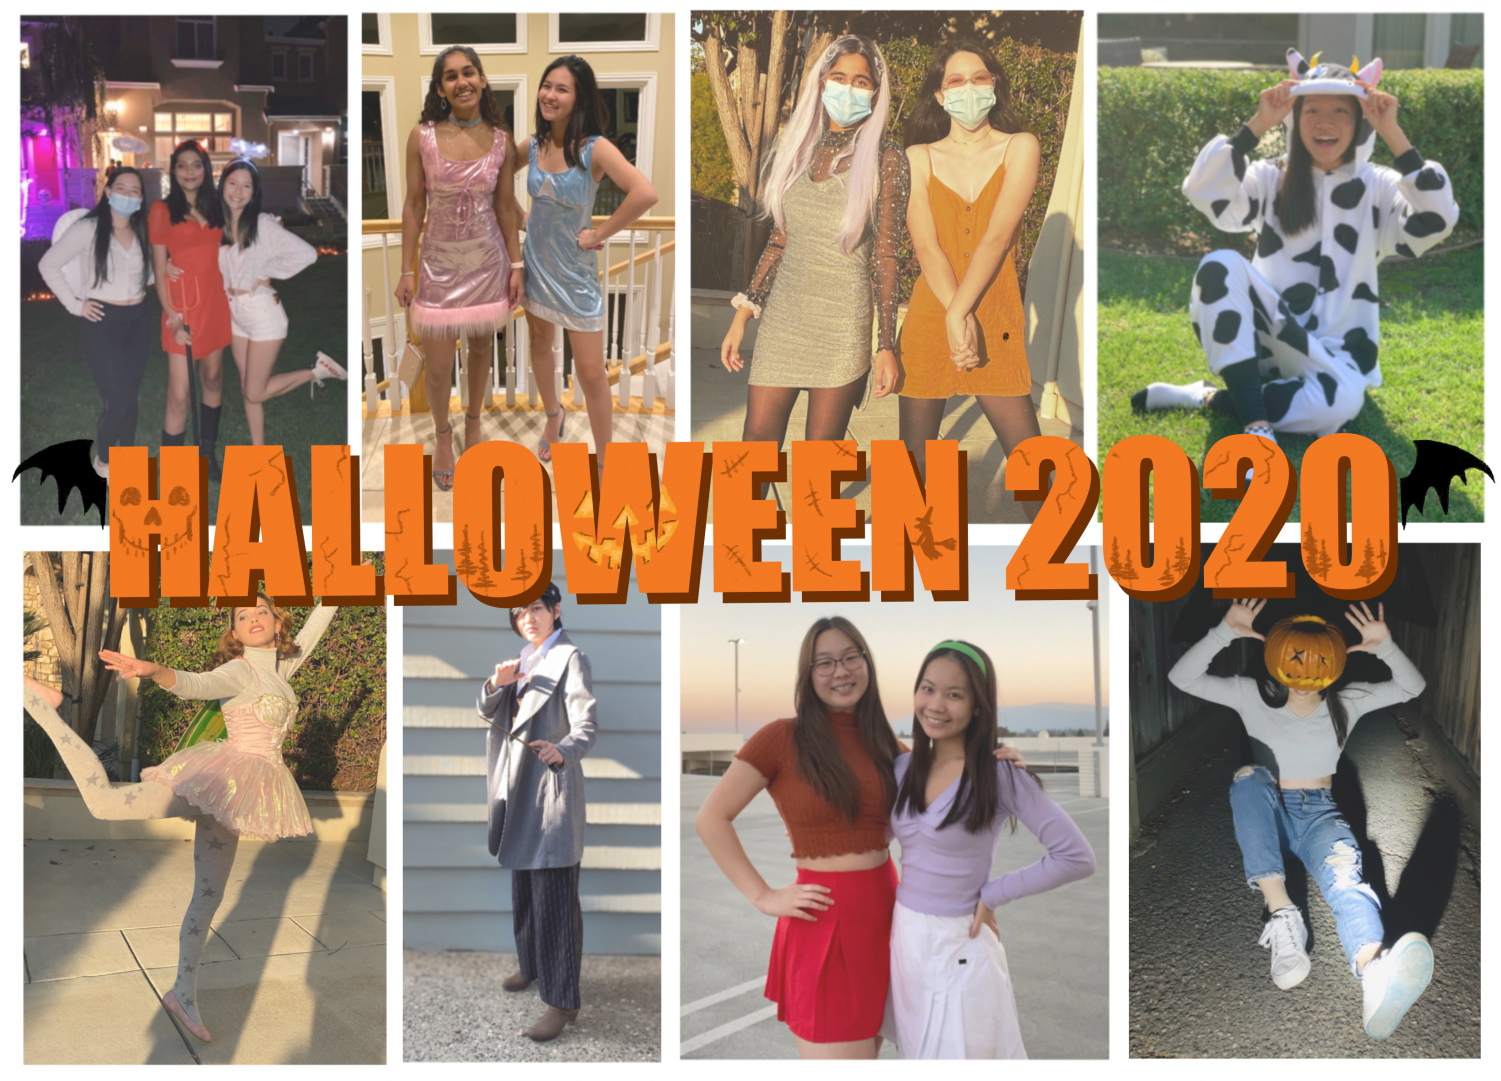 This year, students preserved the Halloween spirit through their costumes, many of which were homemade, transforming themselves into movie characters, fairies, and even a Christmas tree.